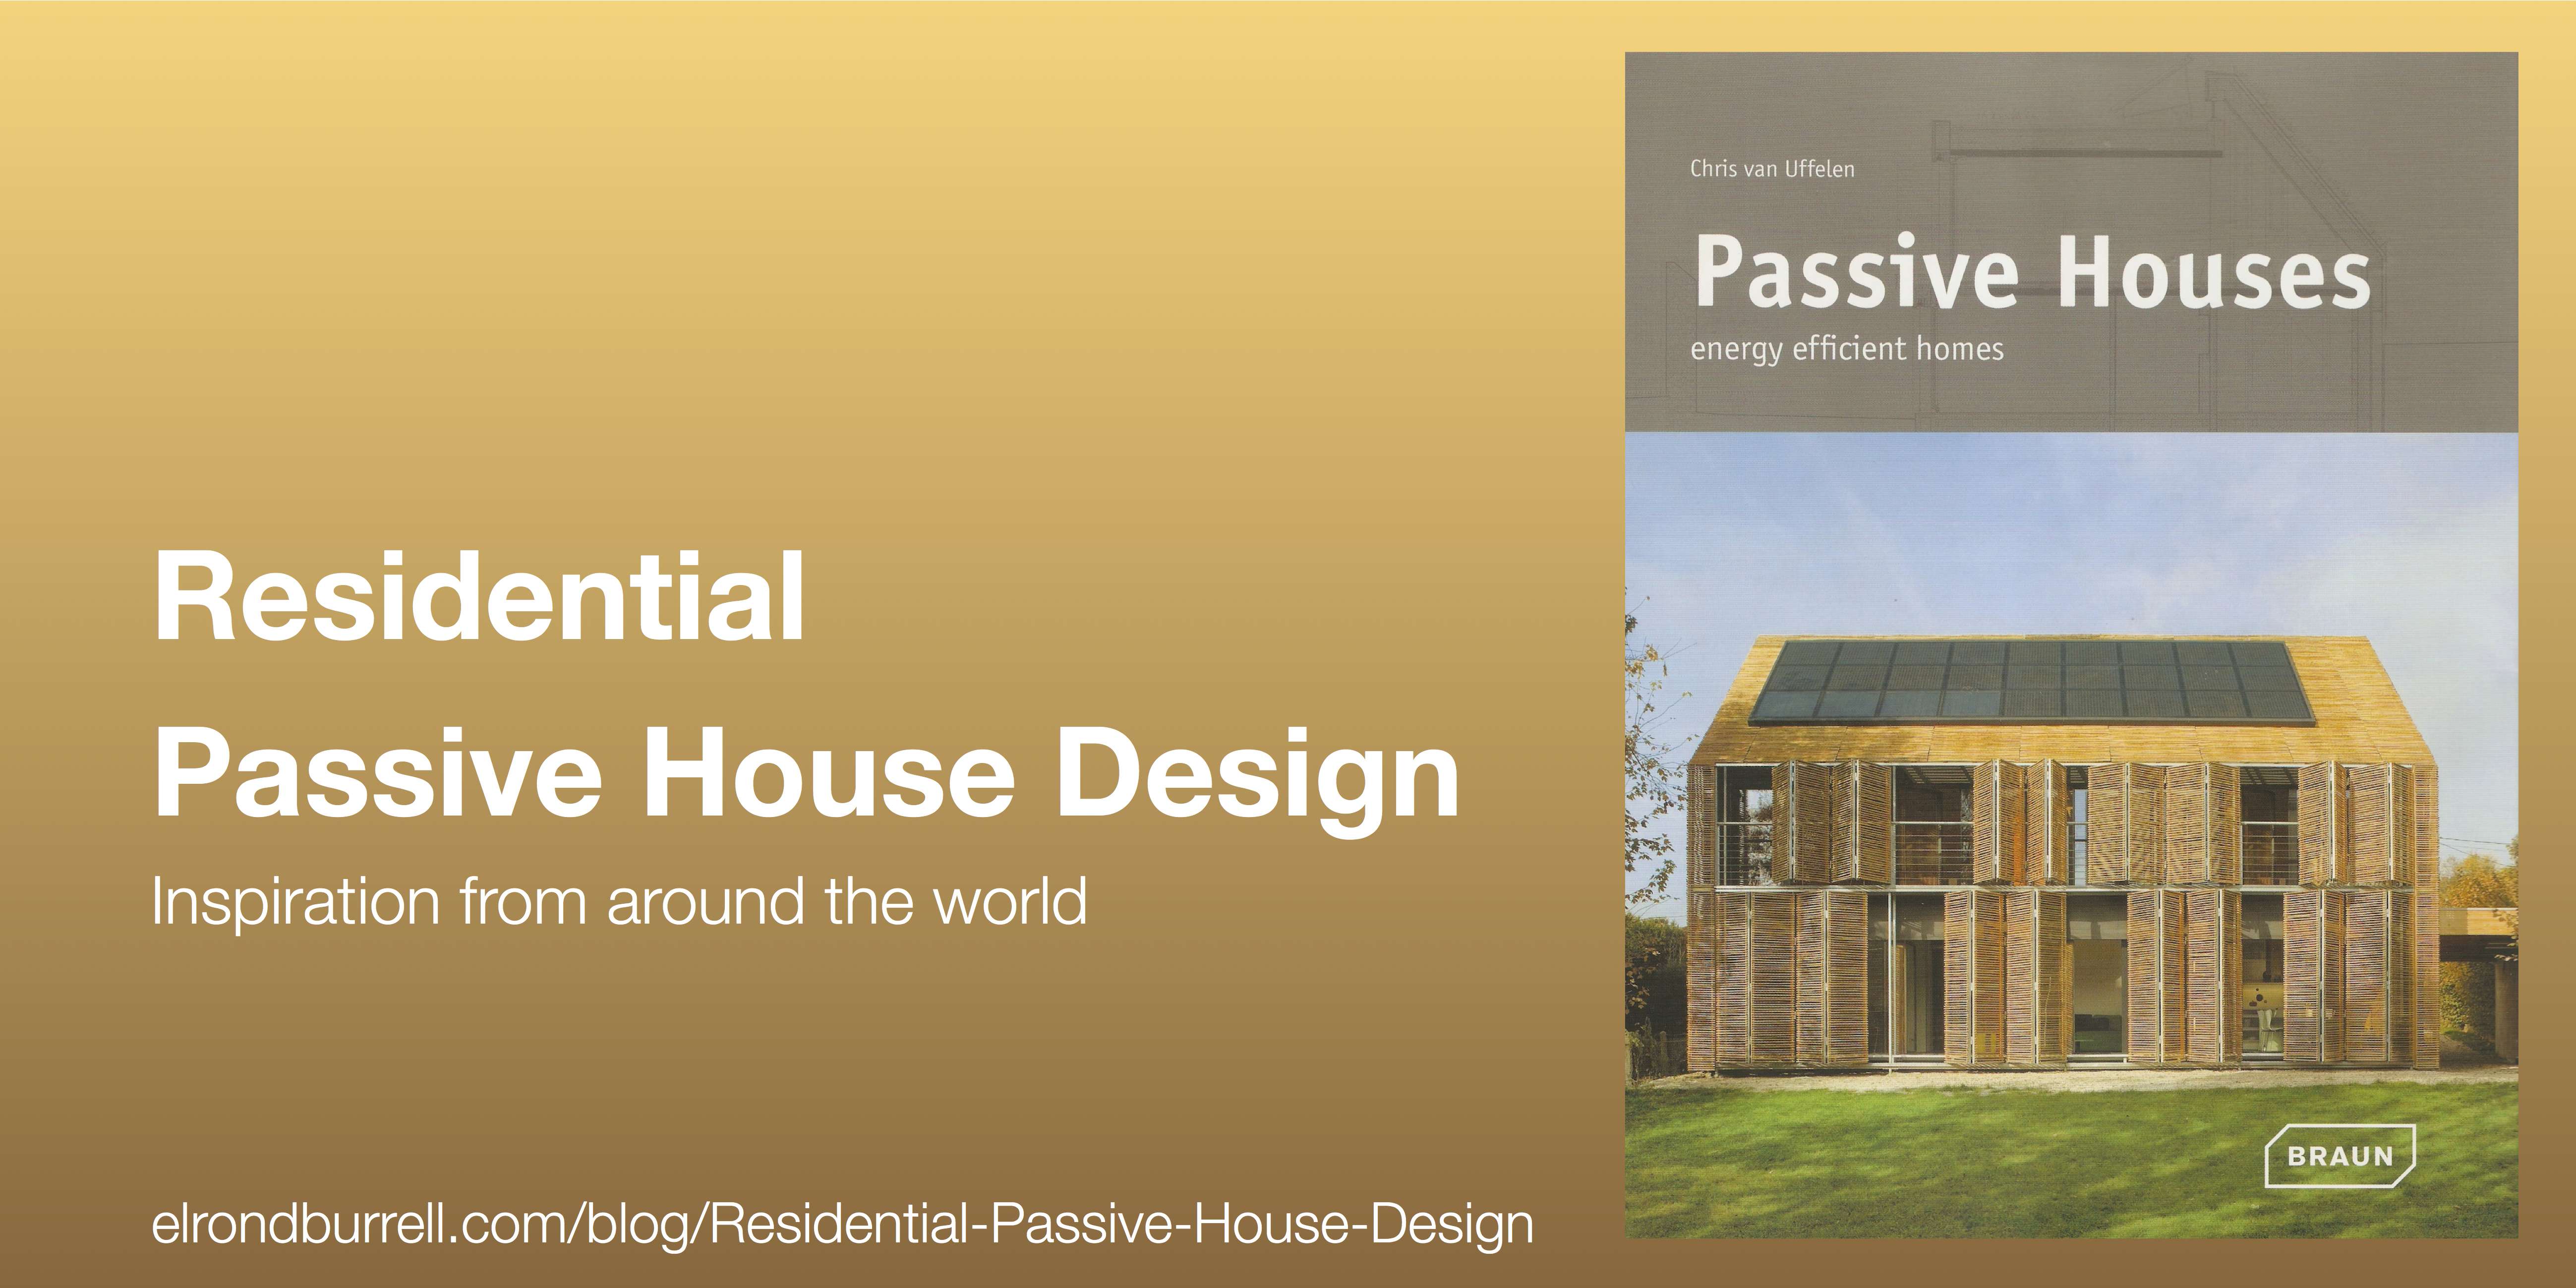 ... Energy Efficient Homes. 013 Residential Passive House Design. U201c